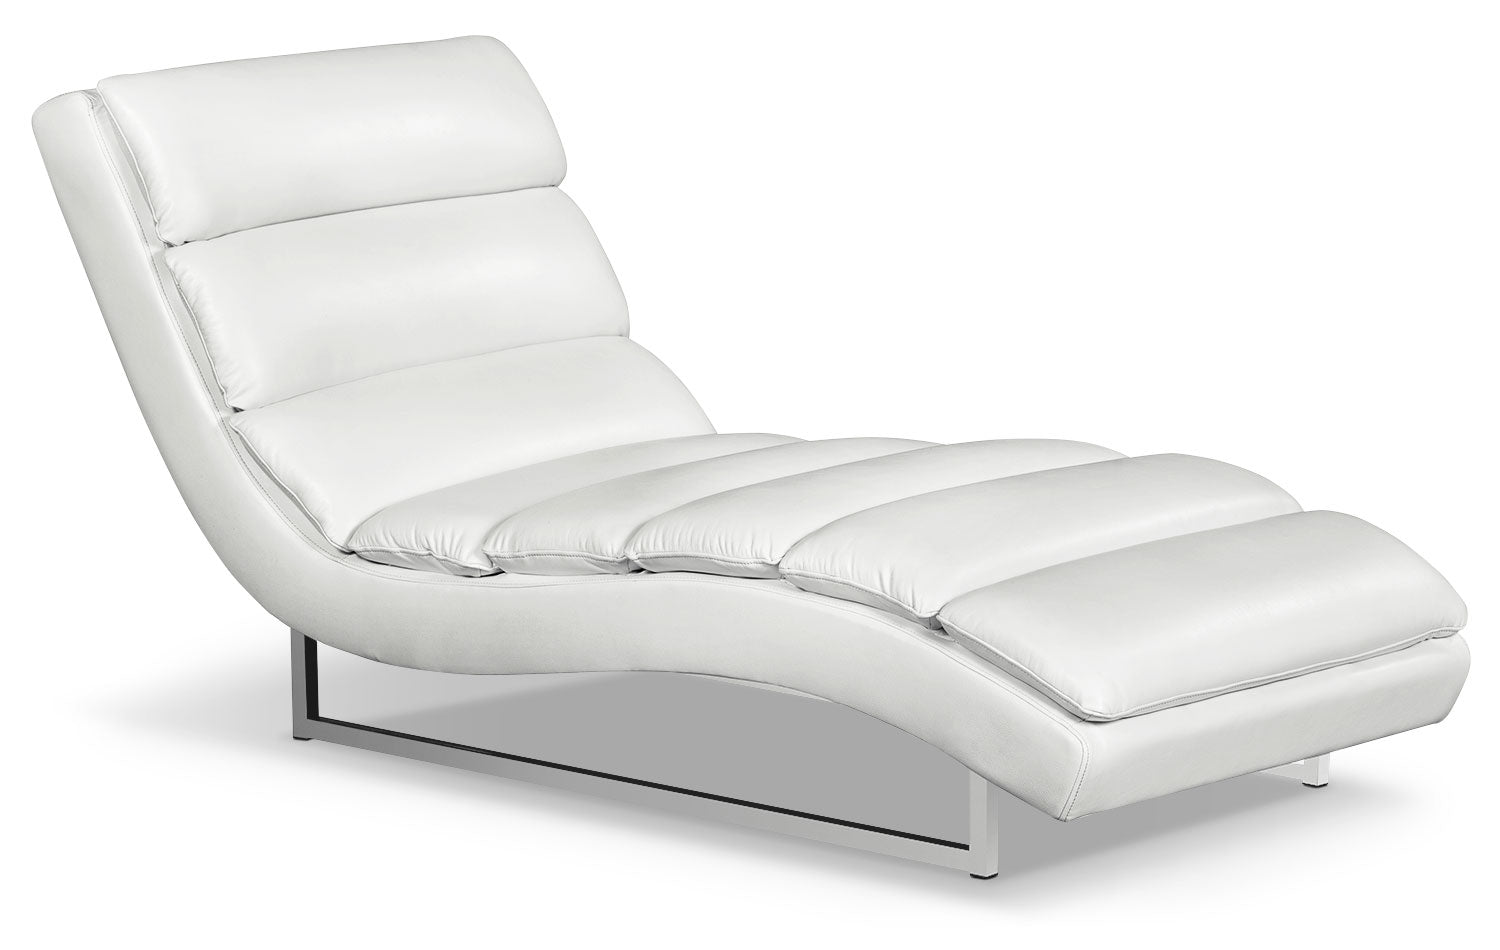 Maddy Leather-Look Fabric Chaise – Cream | The Brick on chaise longue, chaise en bois, chaise lounge, chaise en transparent,